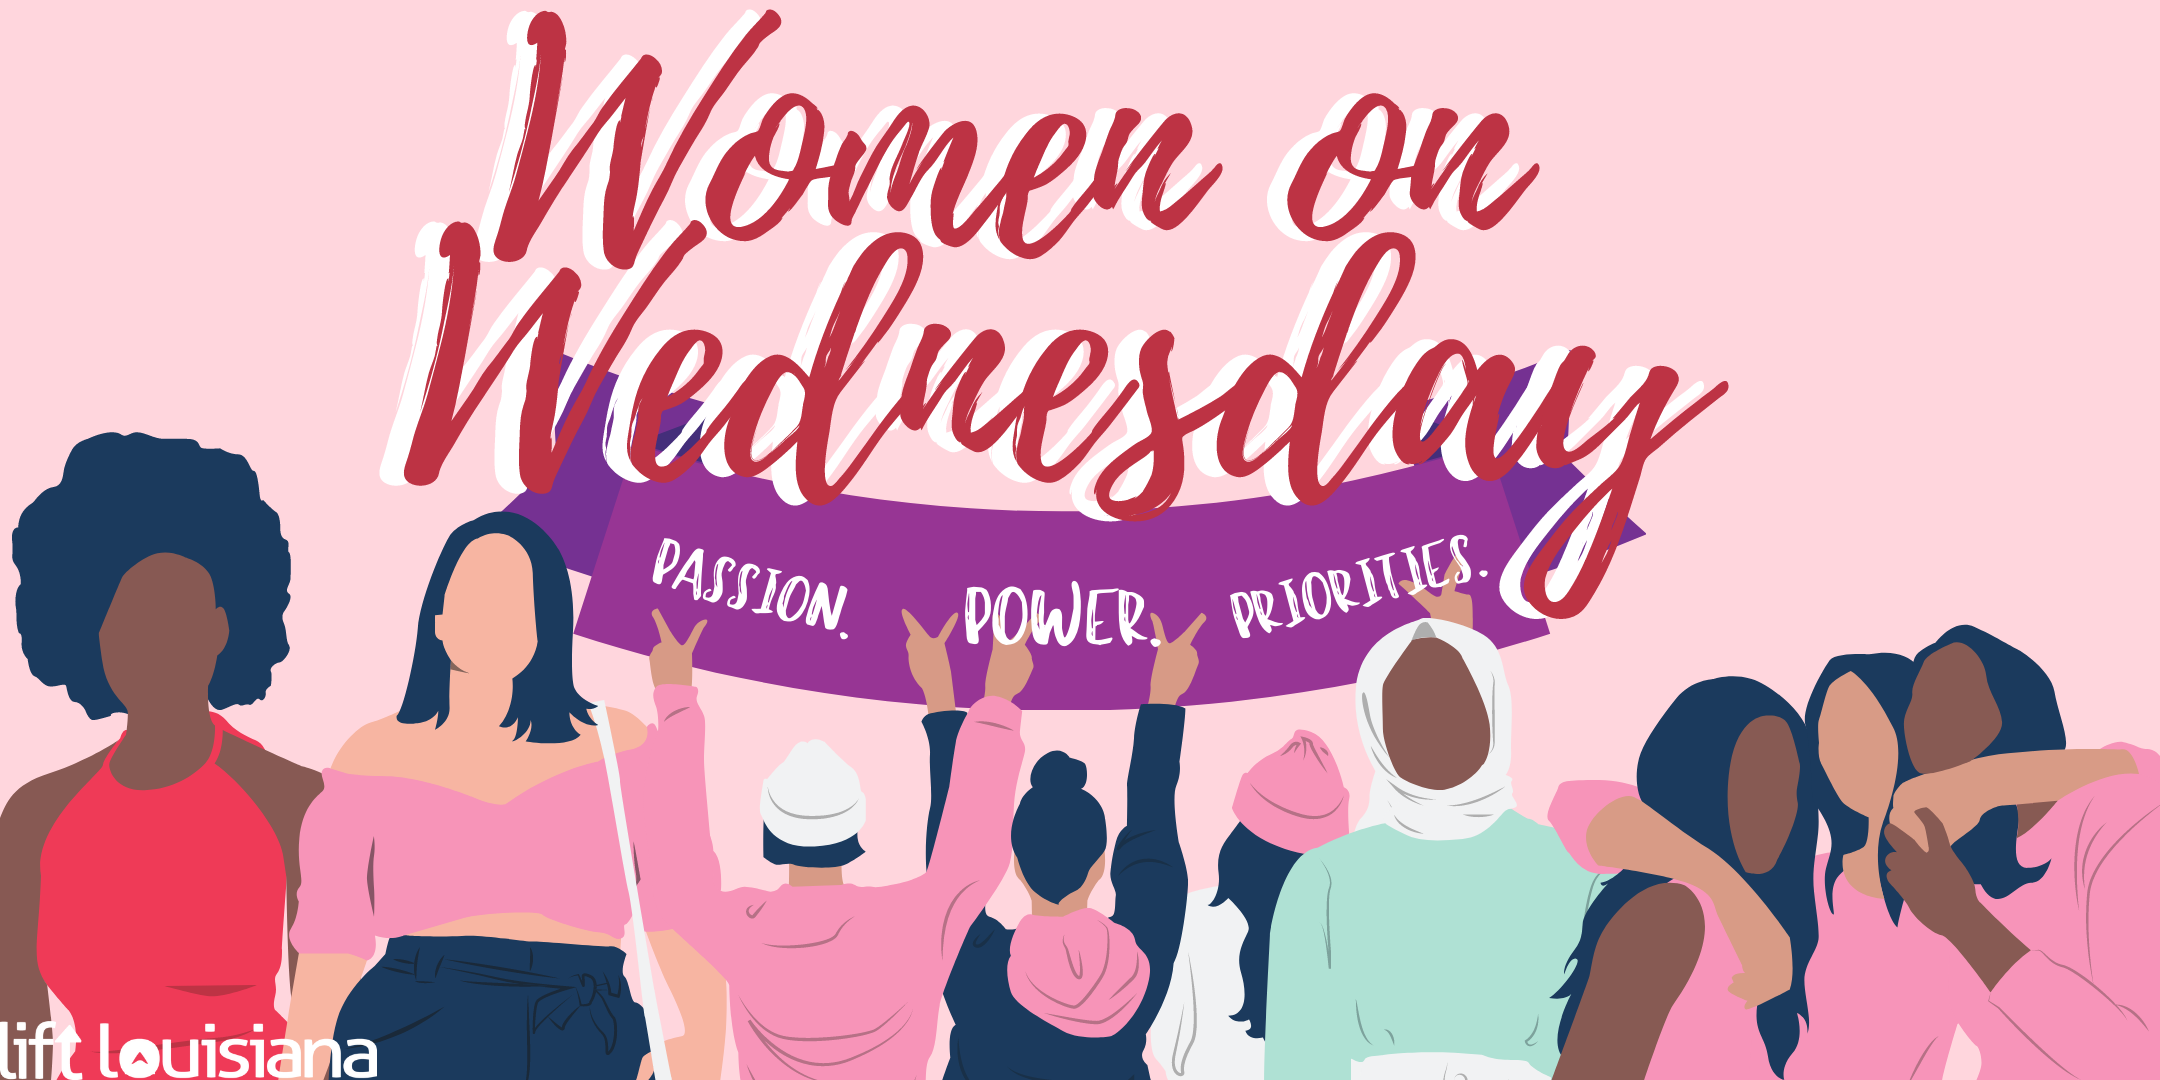 Women on Wednesdays is Back!